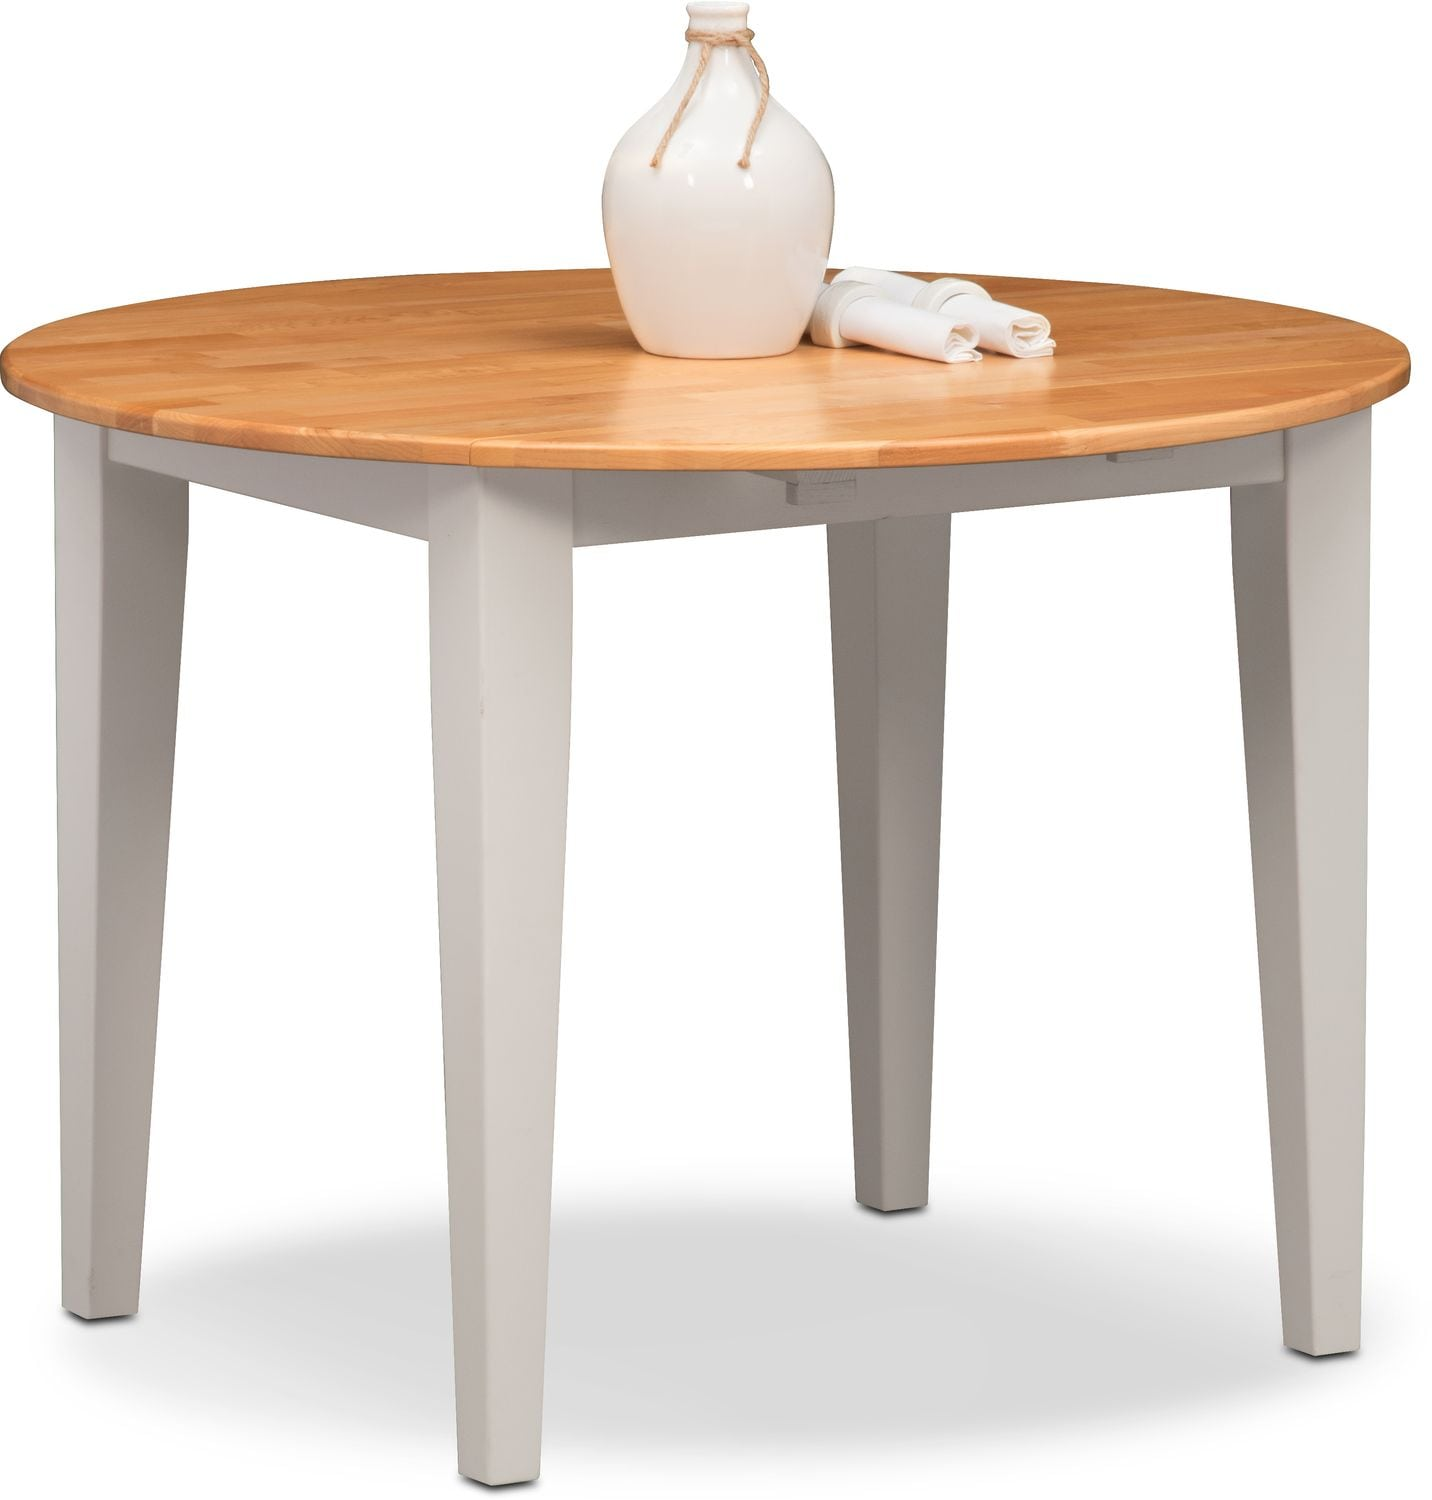 Nantucket drop leaf table maple and white value city for White dining room table with leaf